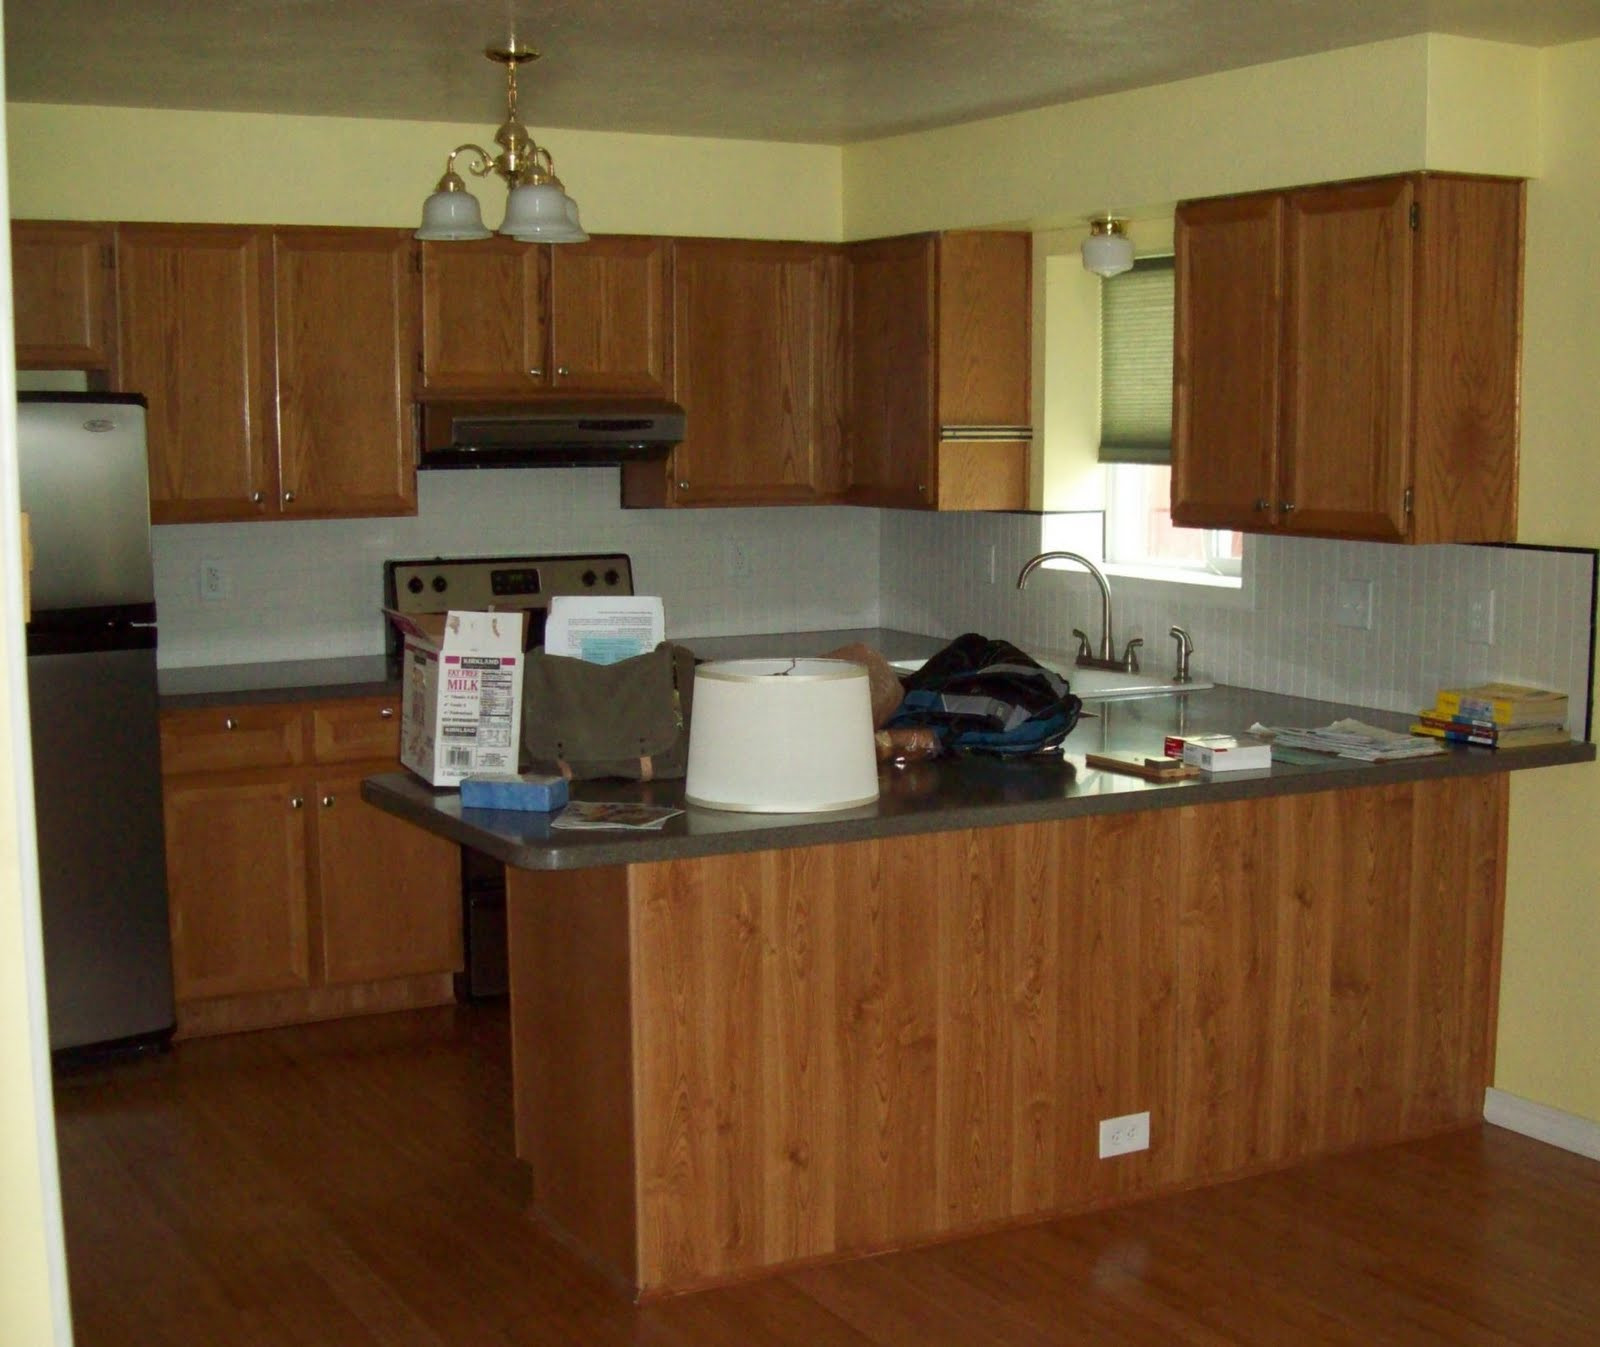 hardwood floor kitchen cabinet combinations of kitchen marvelous brown wooden kitchen cabinets with island also throughout kitchenmarvelous brown wooden kitchen cabinets with island also plus remarkable images neutral designs marvelous